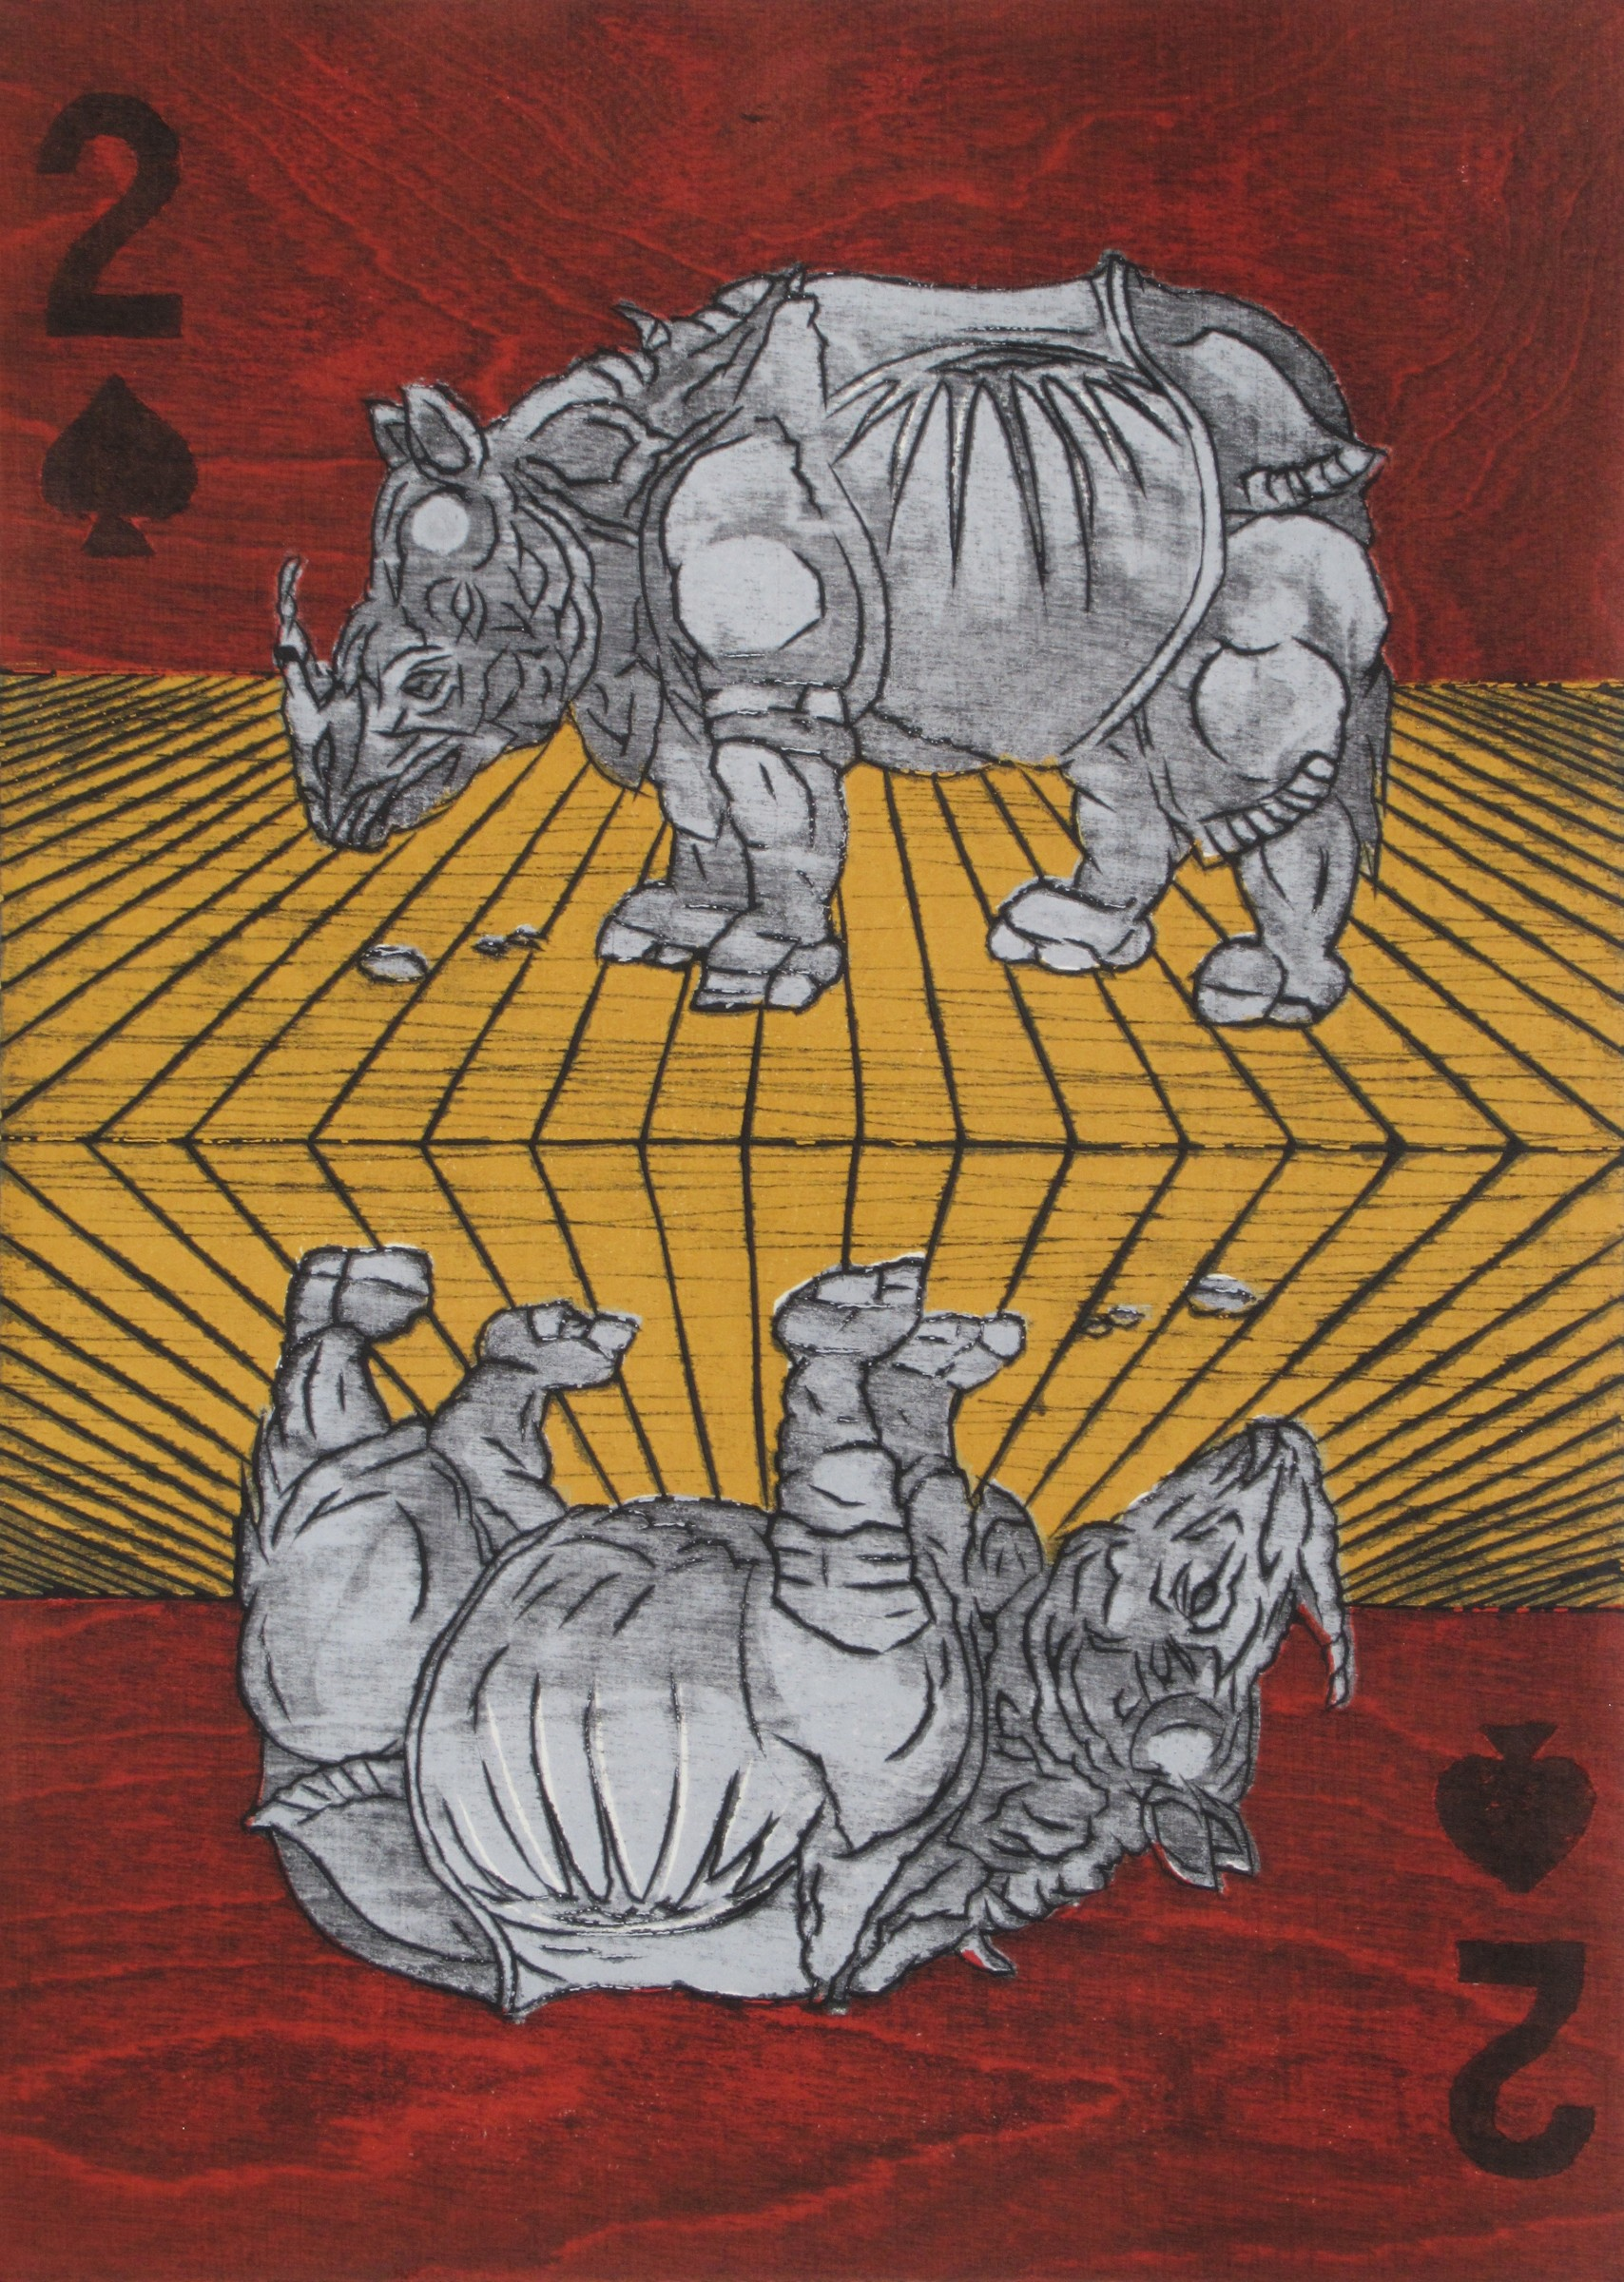 """<span class=""""link fancybox-details-link""""><a href=""""/exhibitions/11/works/image_standalone153/"""">View Detail Page</a></span><p>NANA SHIOMI RE</p><p></p><p><em>Twin Rhinos of Dürer</em>, 2017</p><p>woodcut</p><p>Inspired by Albrecht Dürer</p><p></p><p>Part of the Print REbels Portfolio</p><p></p><p>""""I invited <b>Albrecht Dürer (1471-1528)</b>'s <i>Rhinoceros</i> to my printmaking world for this fabulous occasion; I picked up the format of the playing card, two of Spades, because the shape of Spade looks like Rhino's view from its front (or back).""""</p>"""